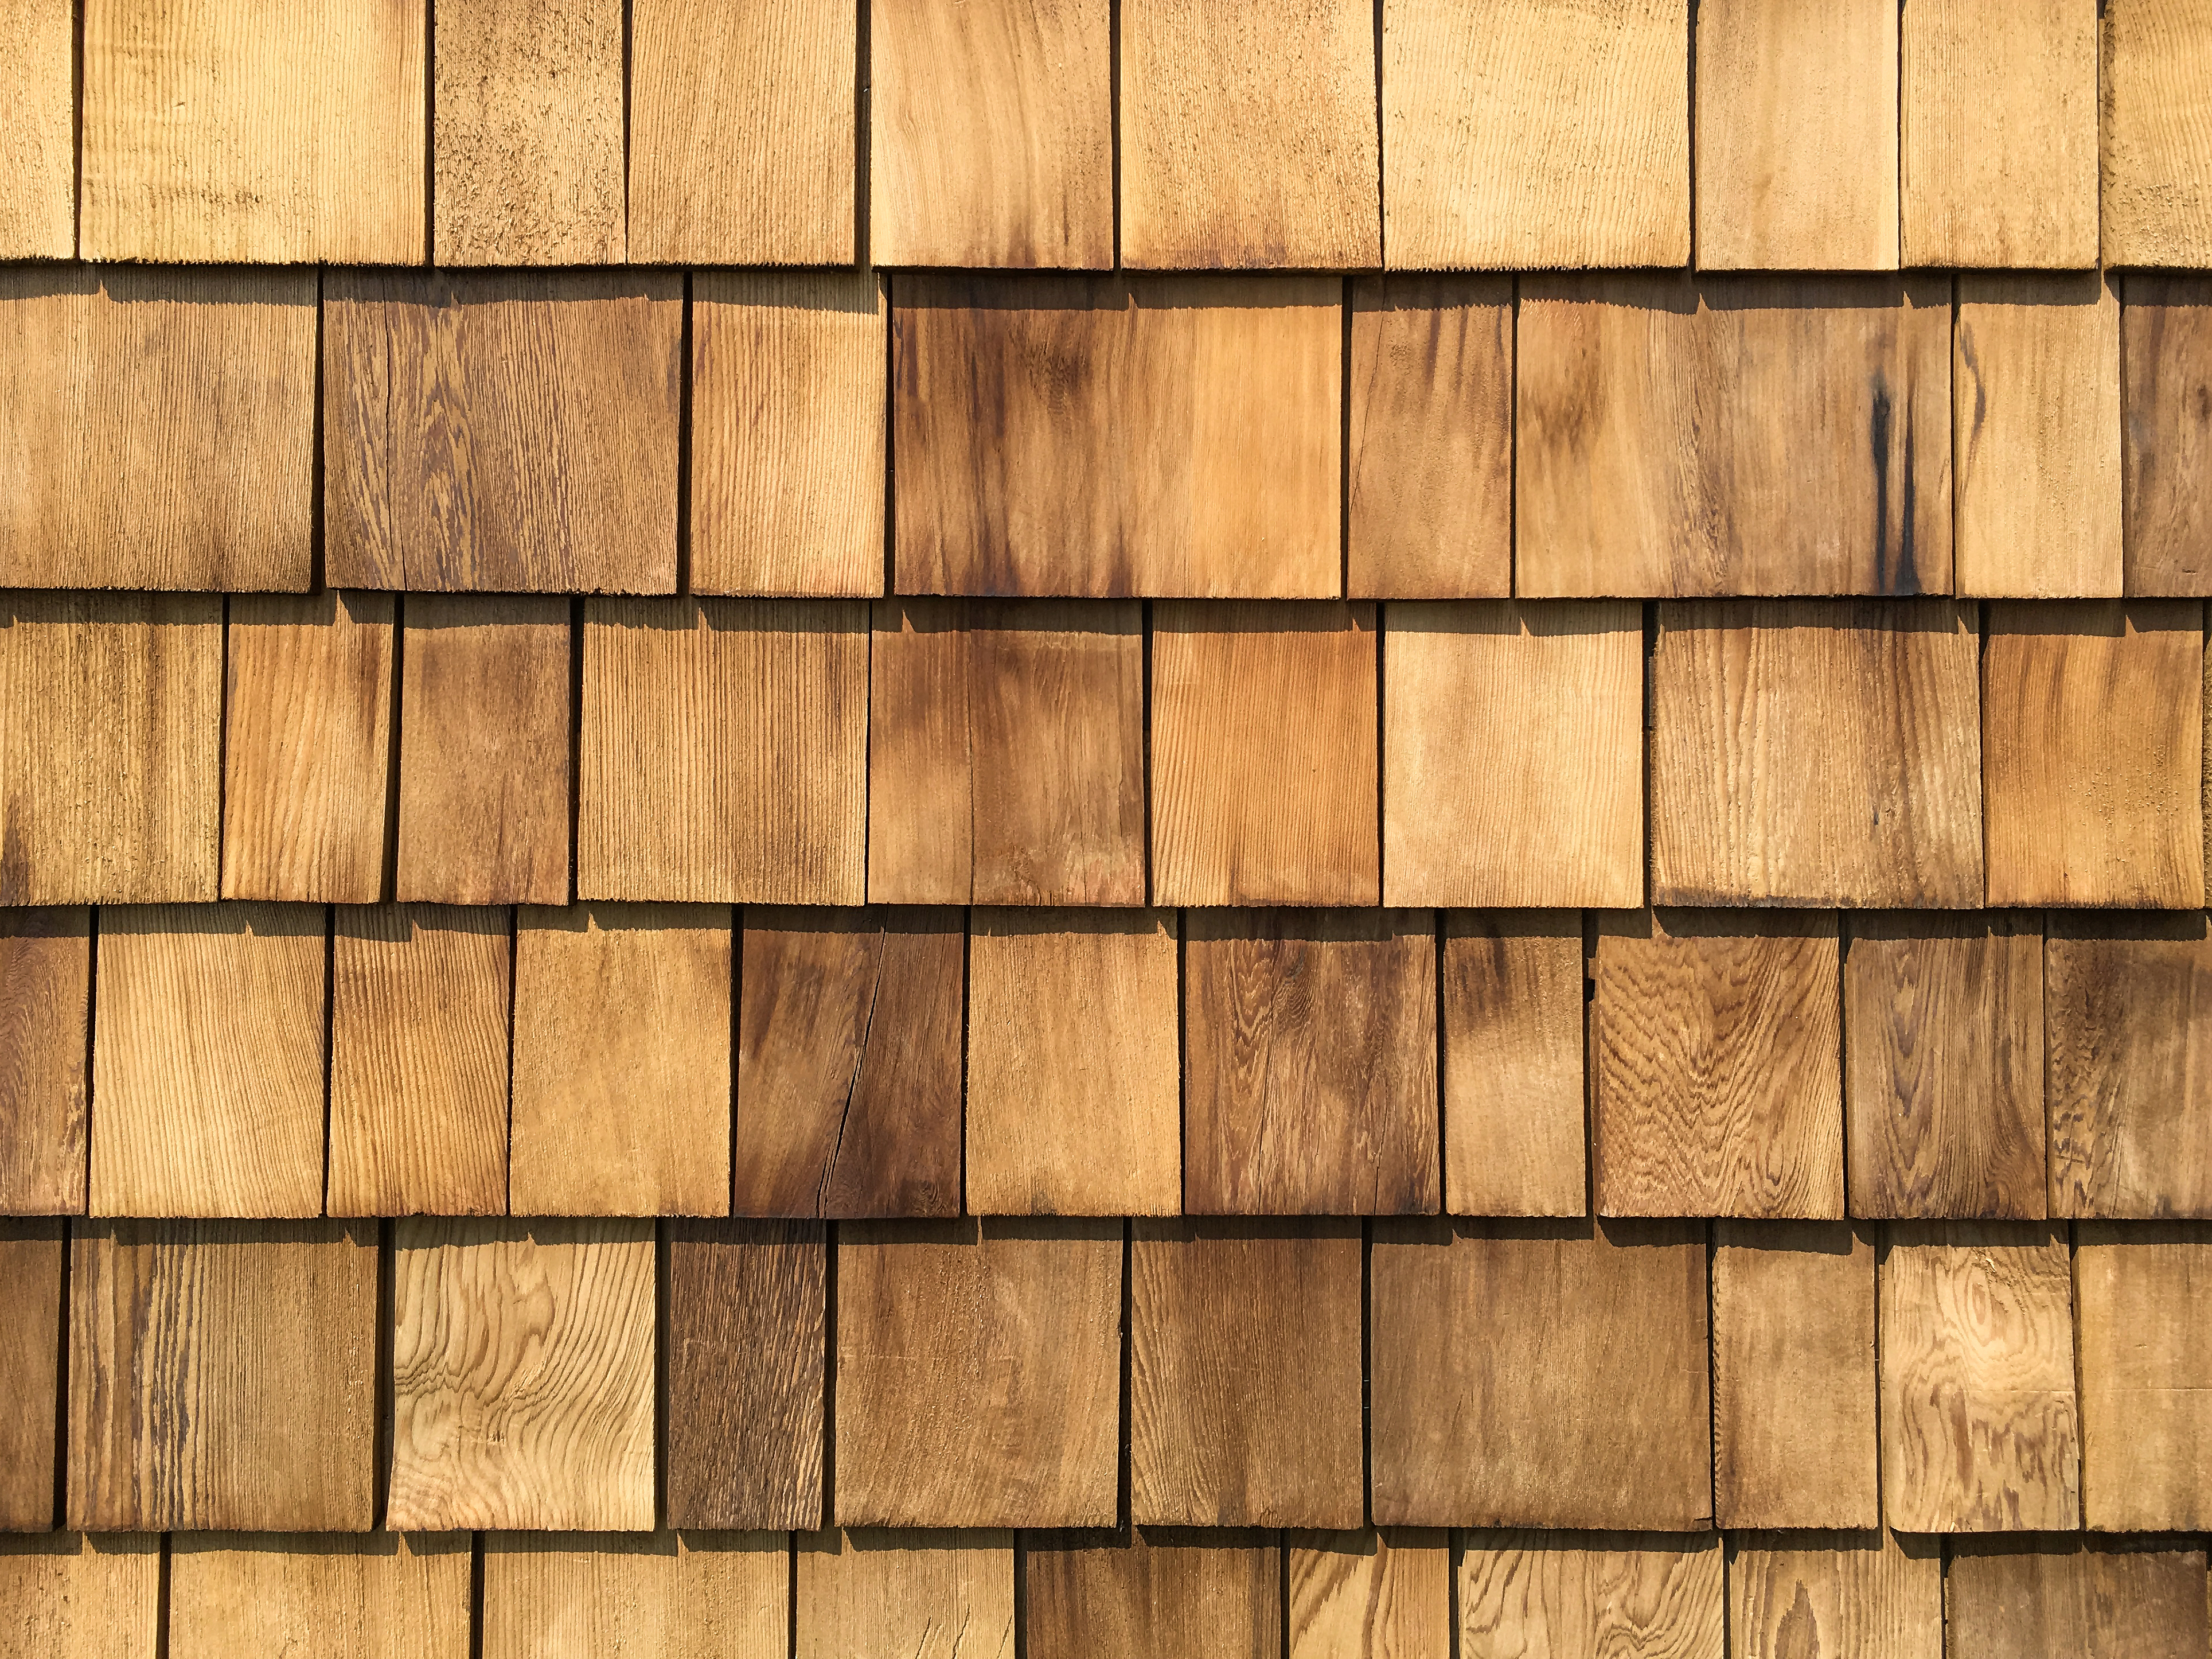 The Minimum Plywood for Roofing | Home Guides | SF Gate